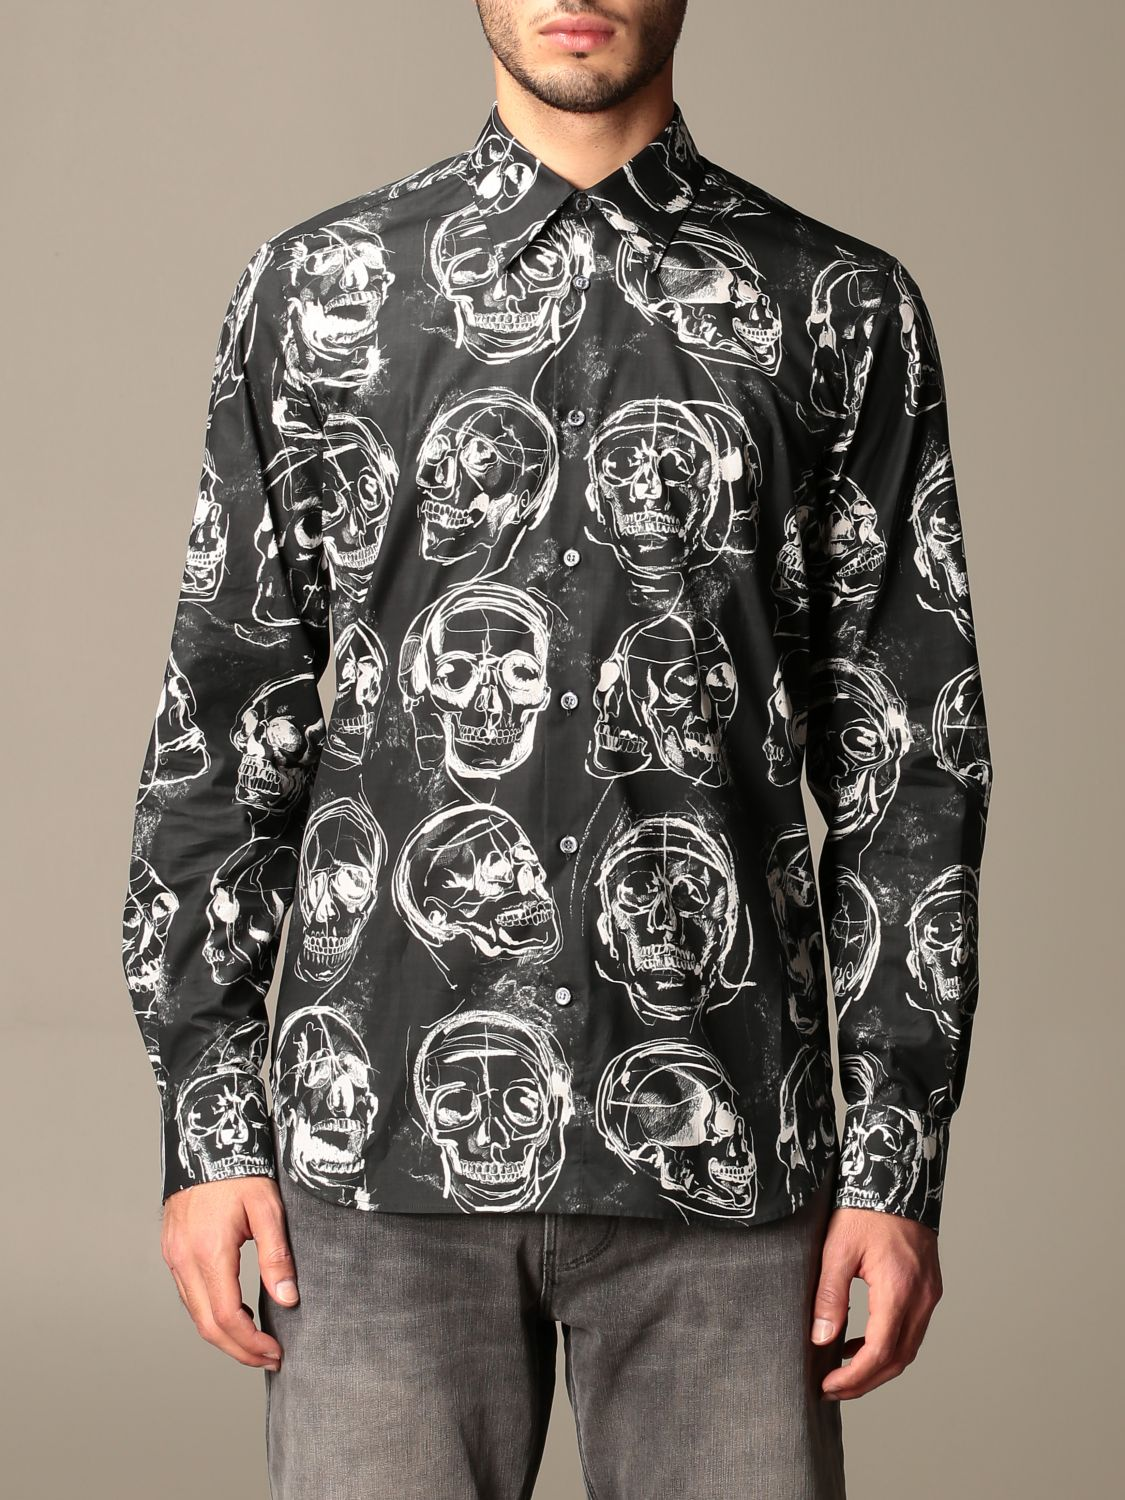 Shirt Alexander Mcqueen: Alexander McQueen shirt with all over skulls black 1